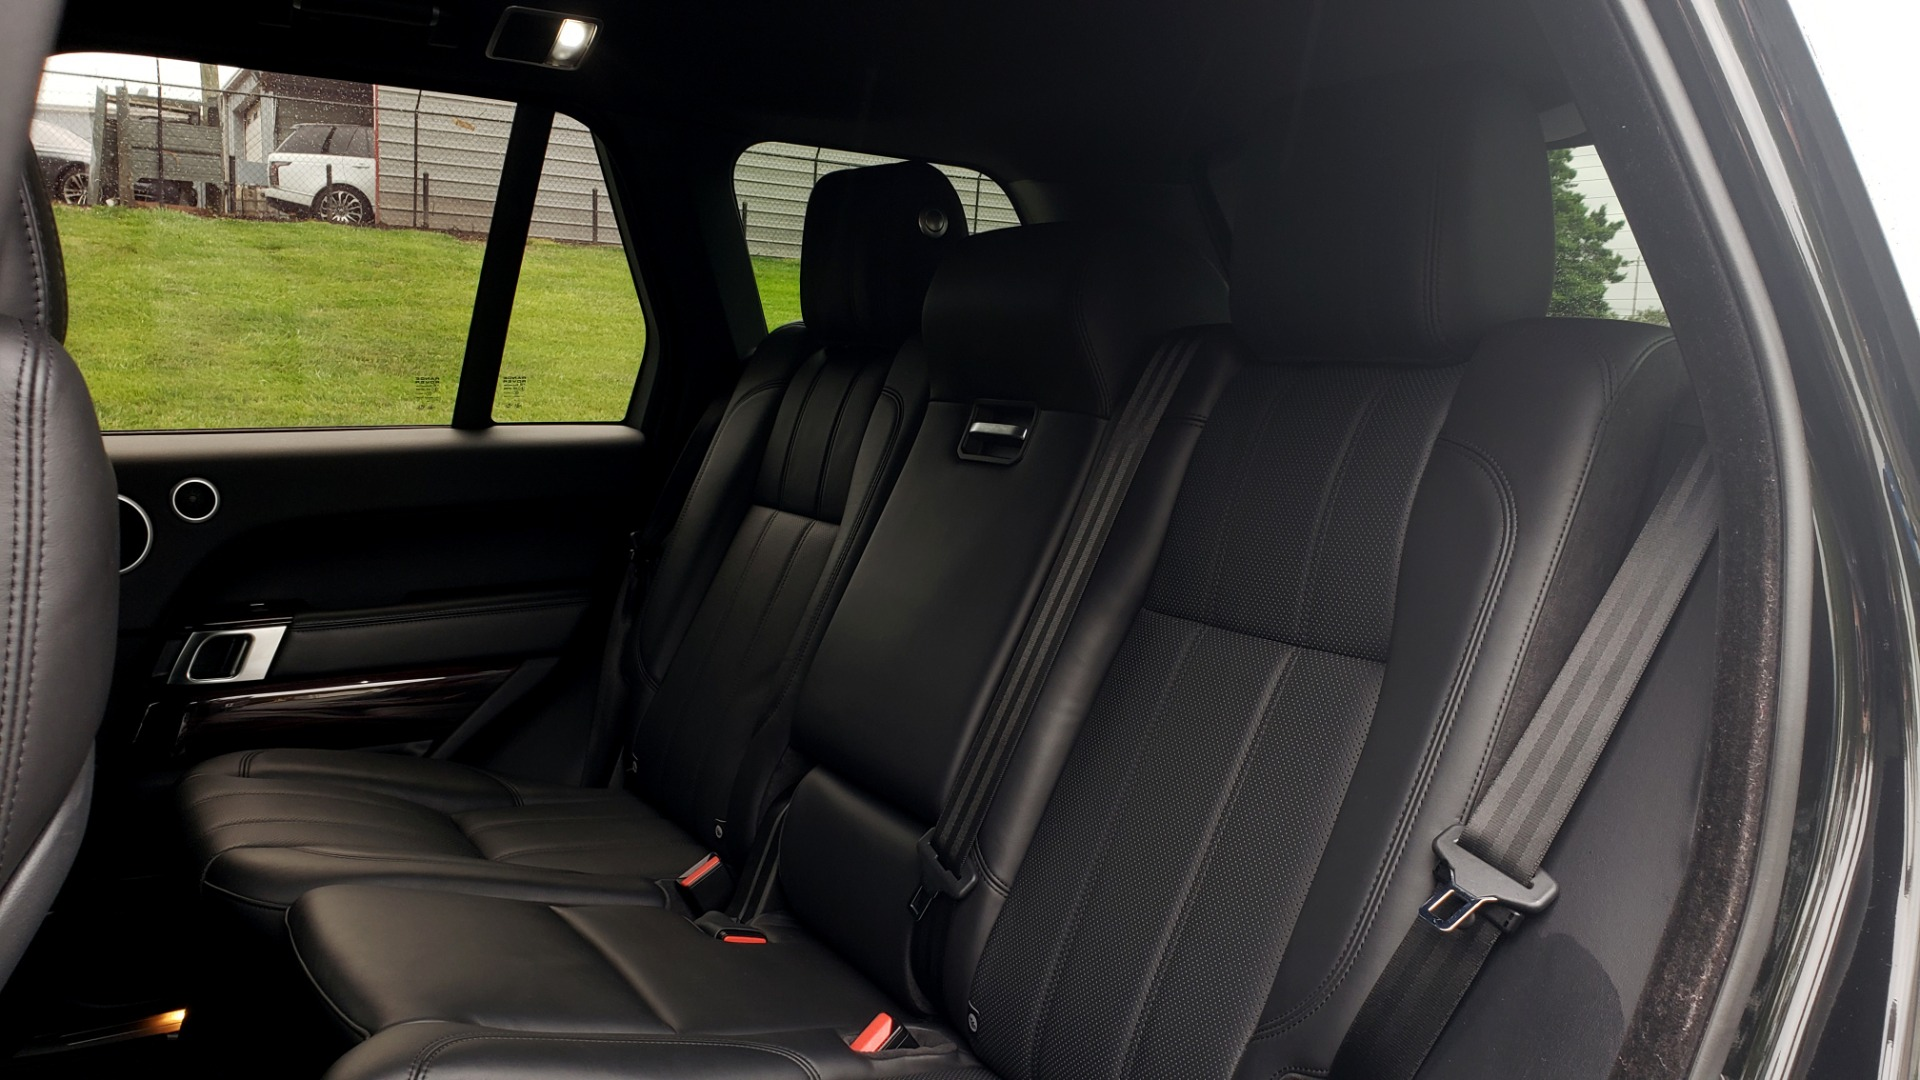 Used 2016 Land Rover Range Rover HSE 3.0L SC V6 / NAV / PANO-ROOF / VENT SEATS / REARVIEW / BLIND SPOT for sale Sold at Formula Imports in Charlotte NC 28227 65